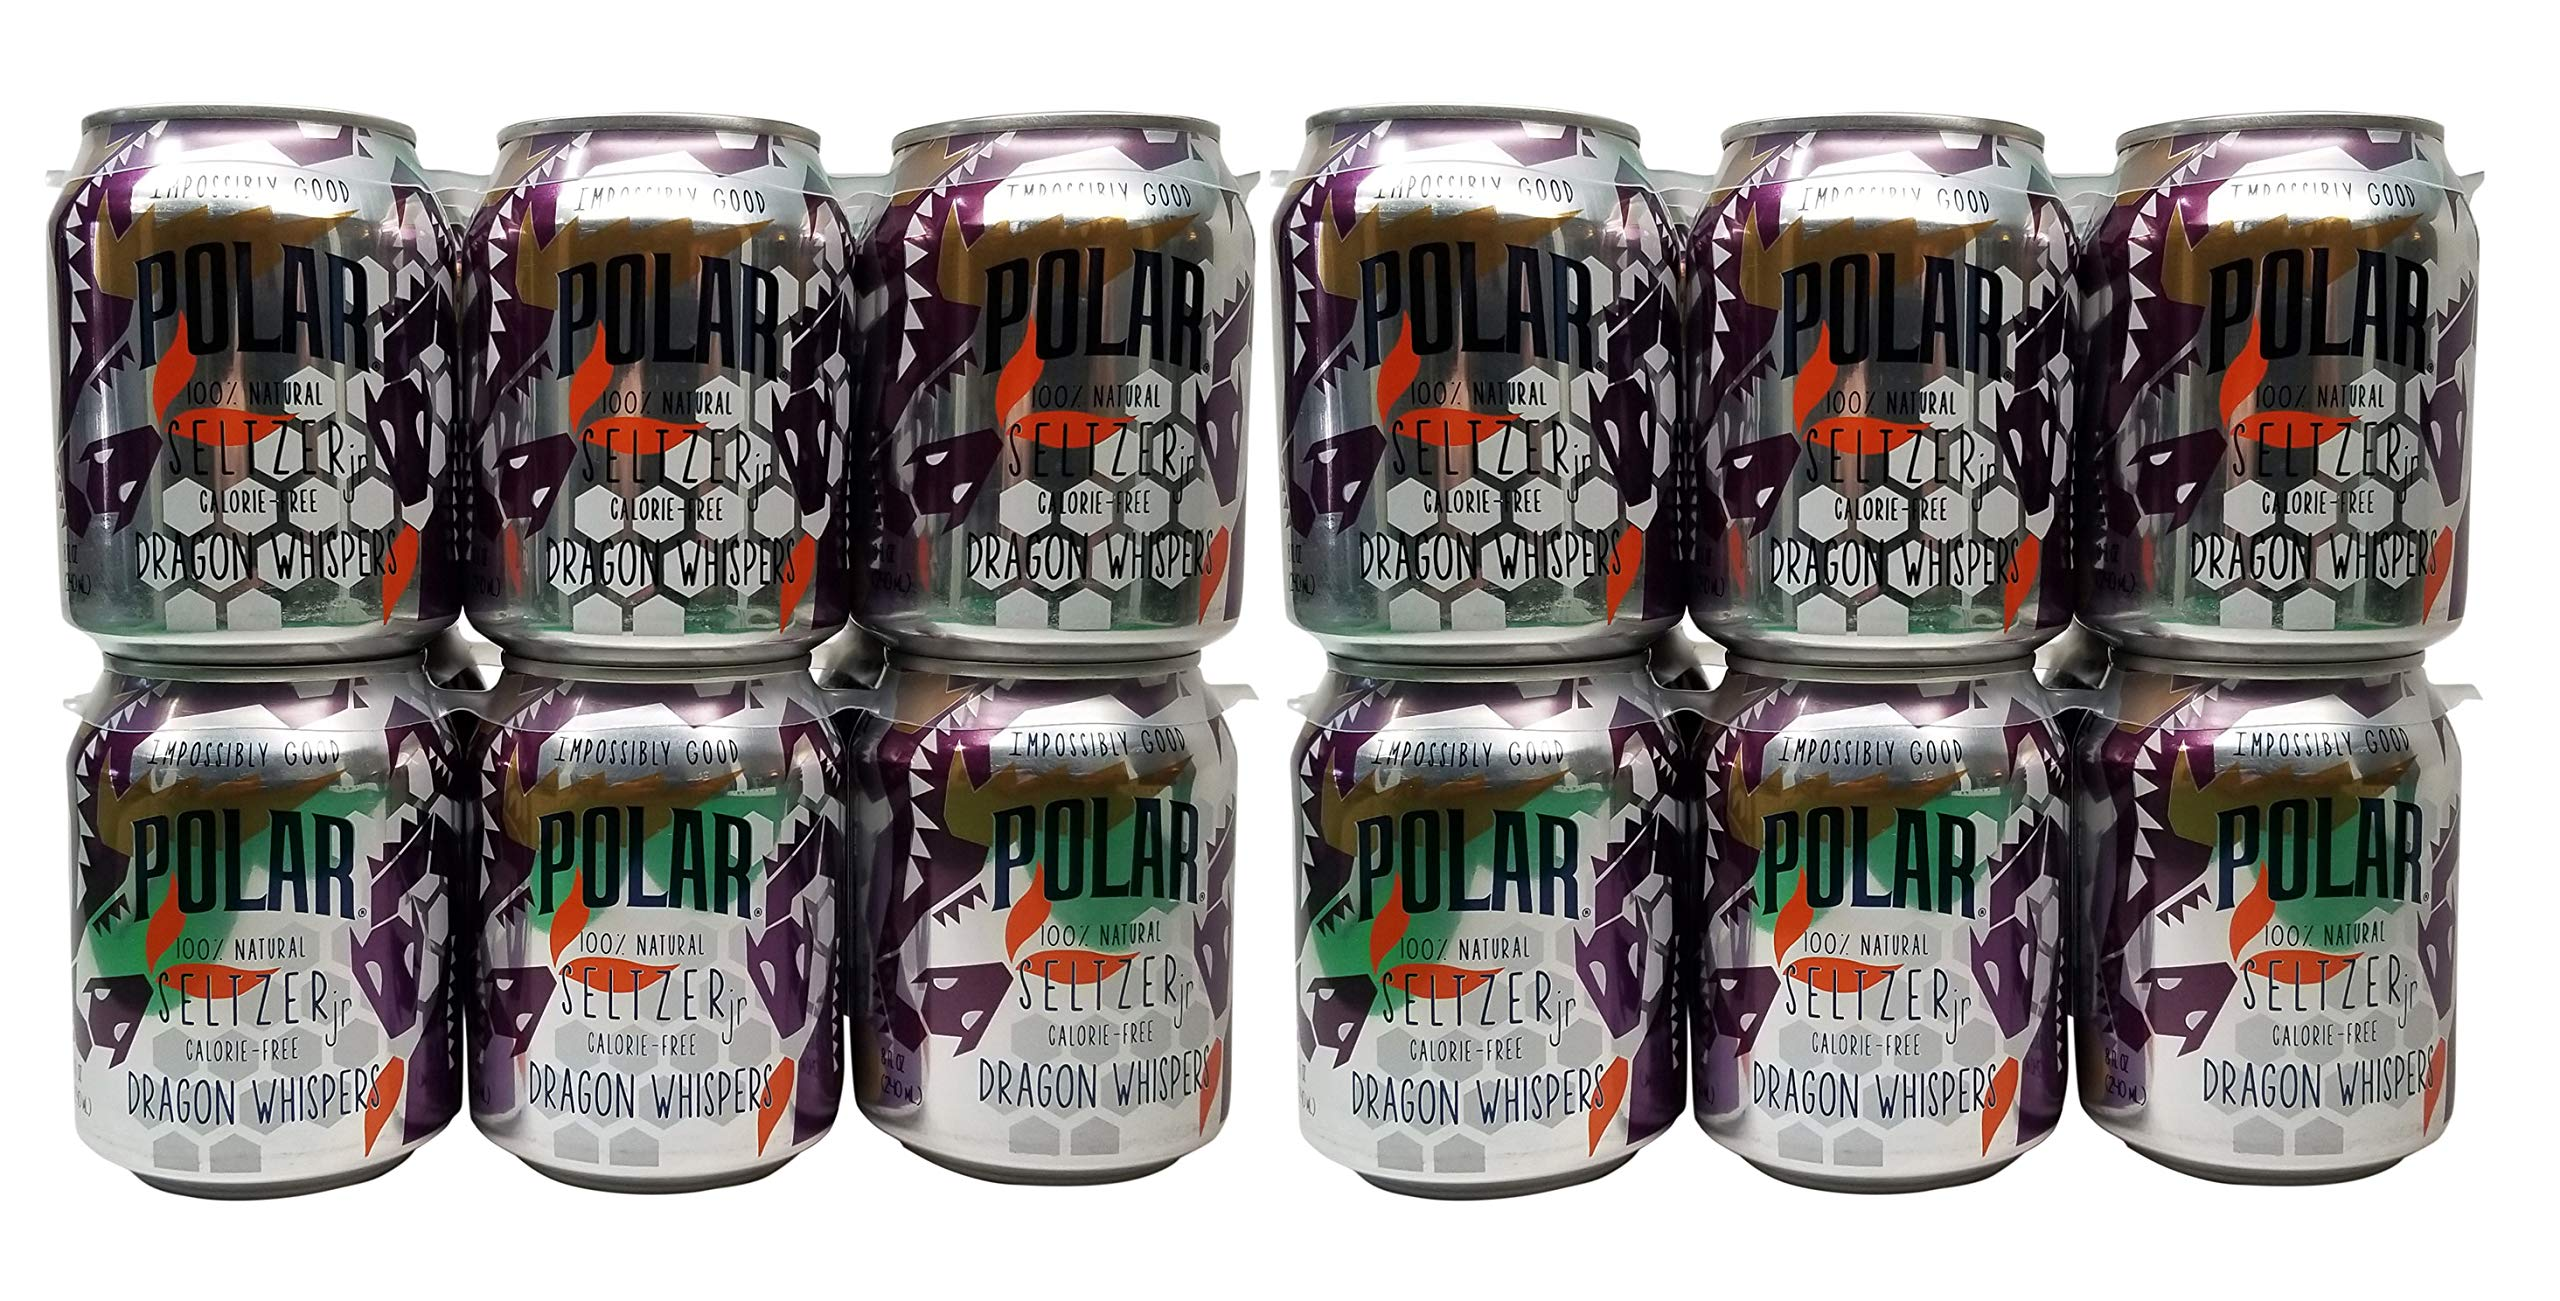 Polar Seltzer Impossibly Good Dragon Whispers 24 pk 8 oz. Cans by Generic